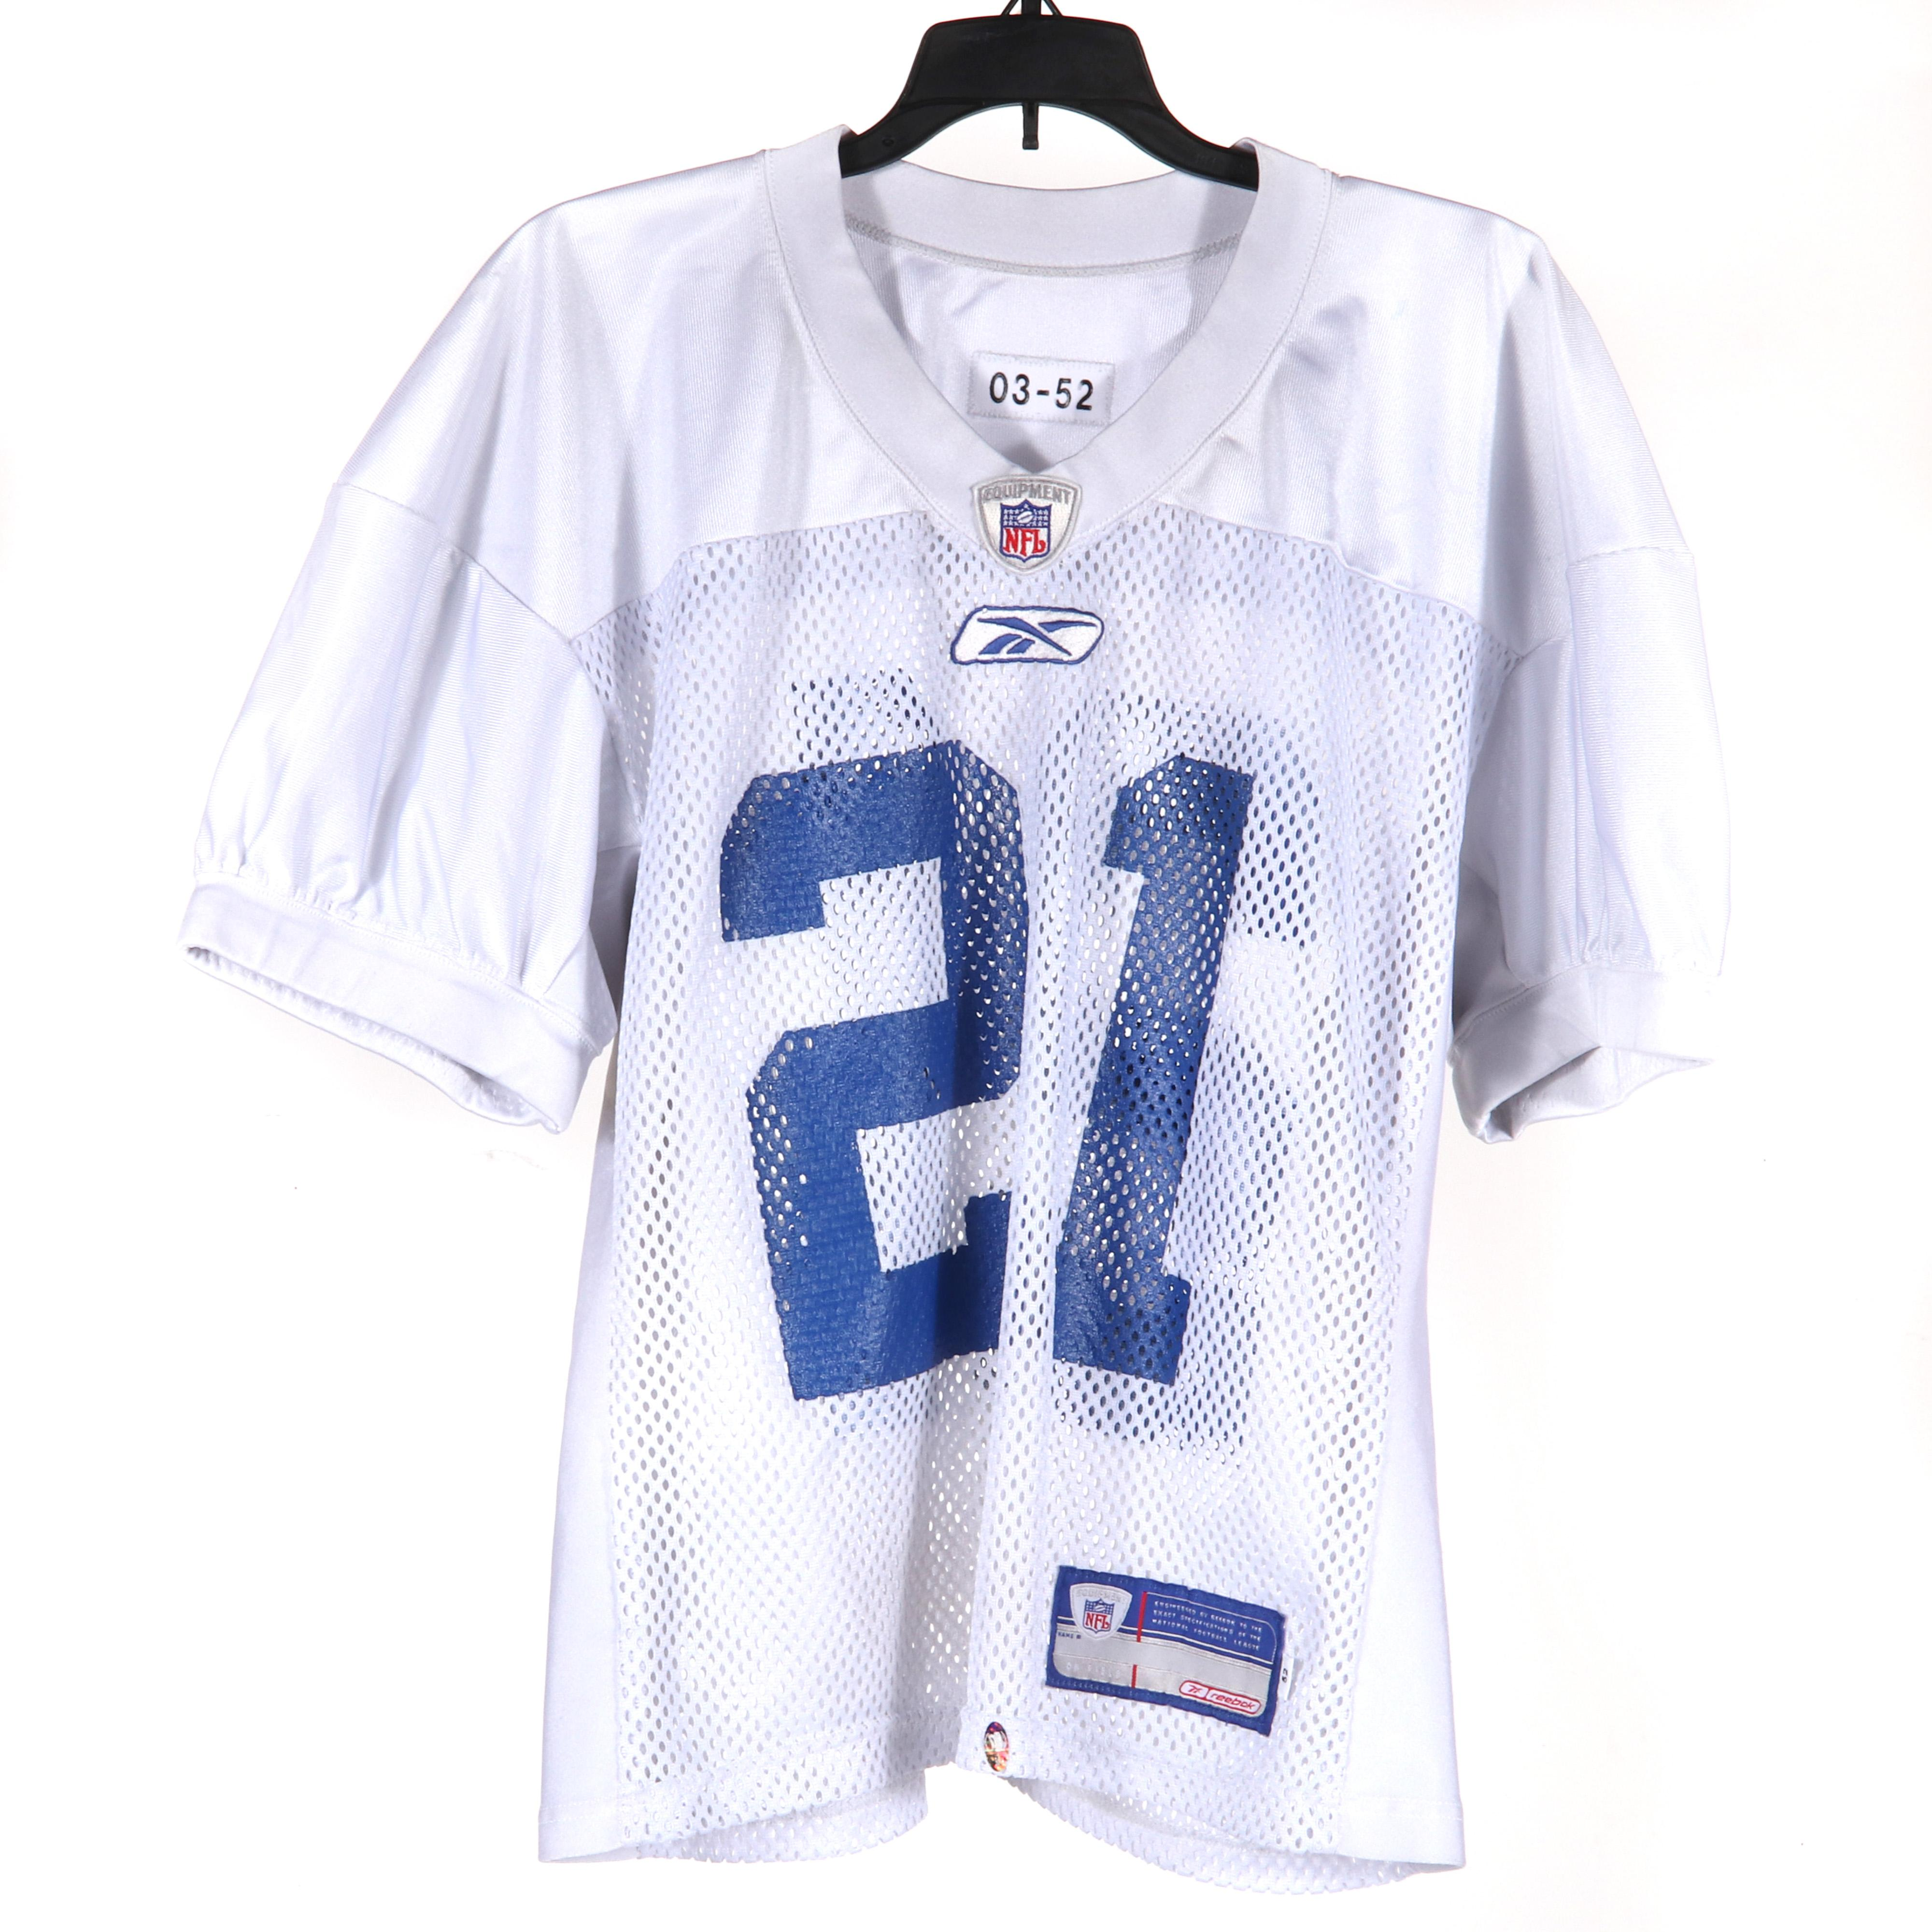 Bob Sanders Indianapolis Colts Practice Worn Jersey